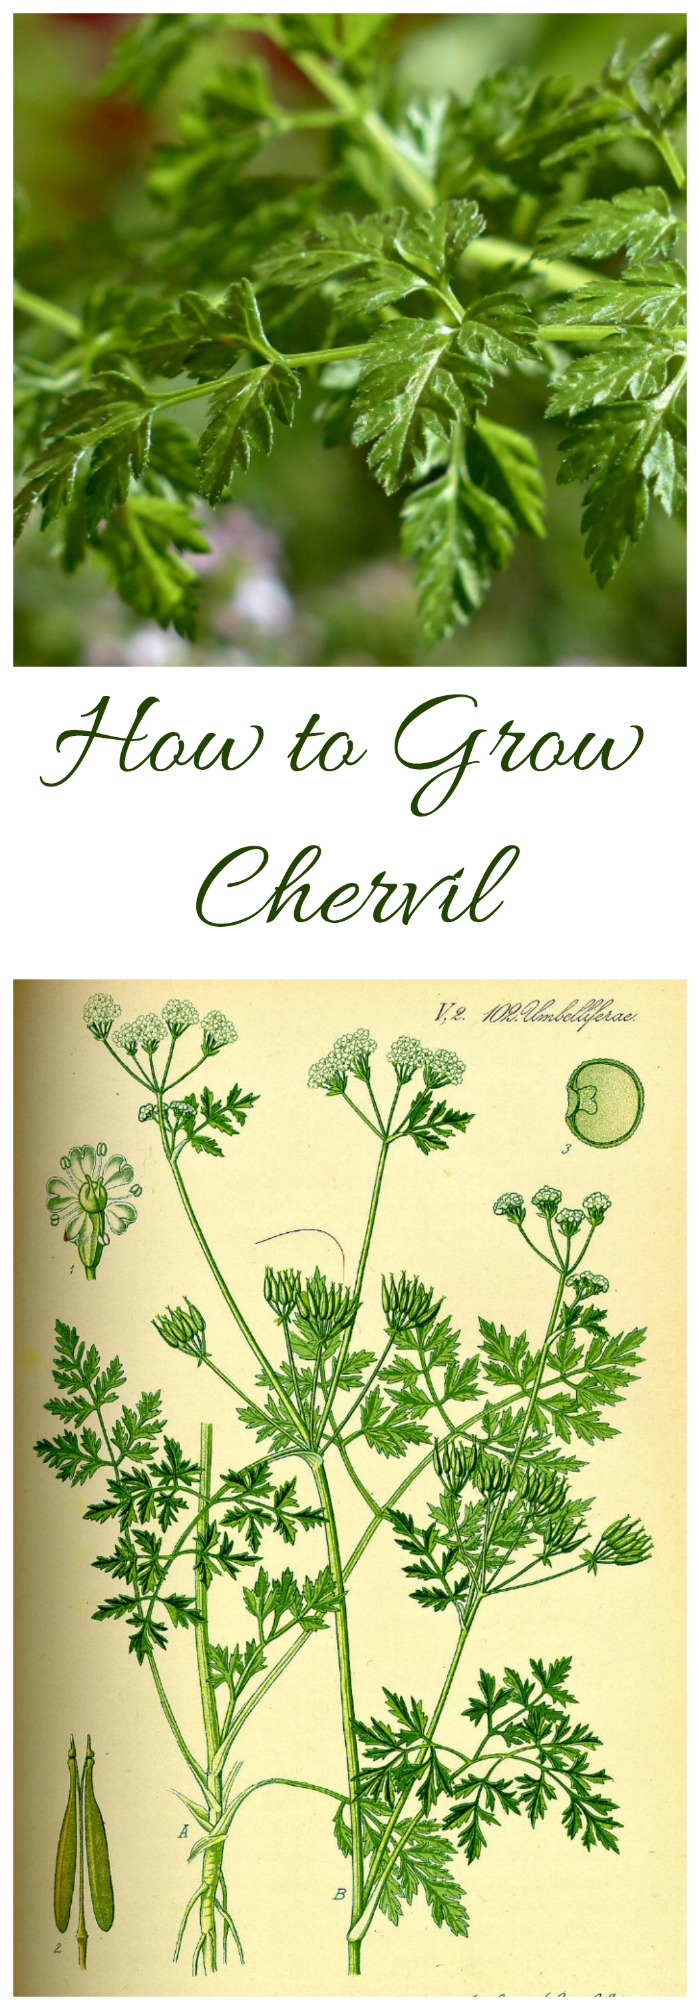 The herb chervil is widely used in French cooking. See my tips for growing chervil, plus some other substitutes. #growingchervil #chervilherb